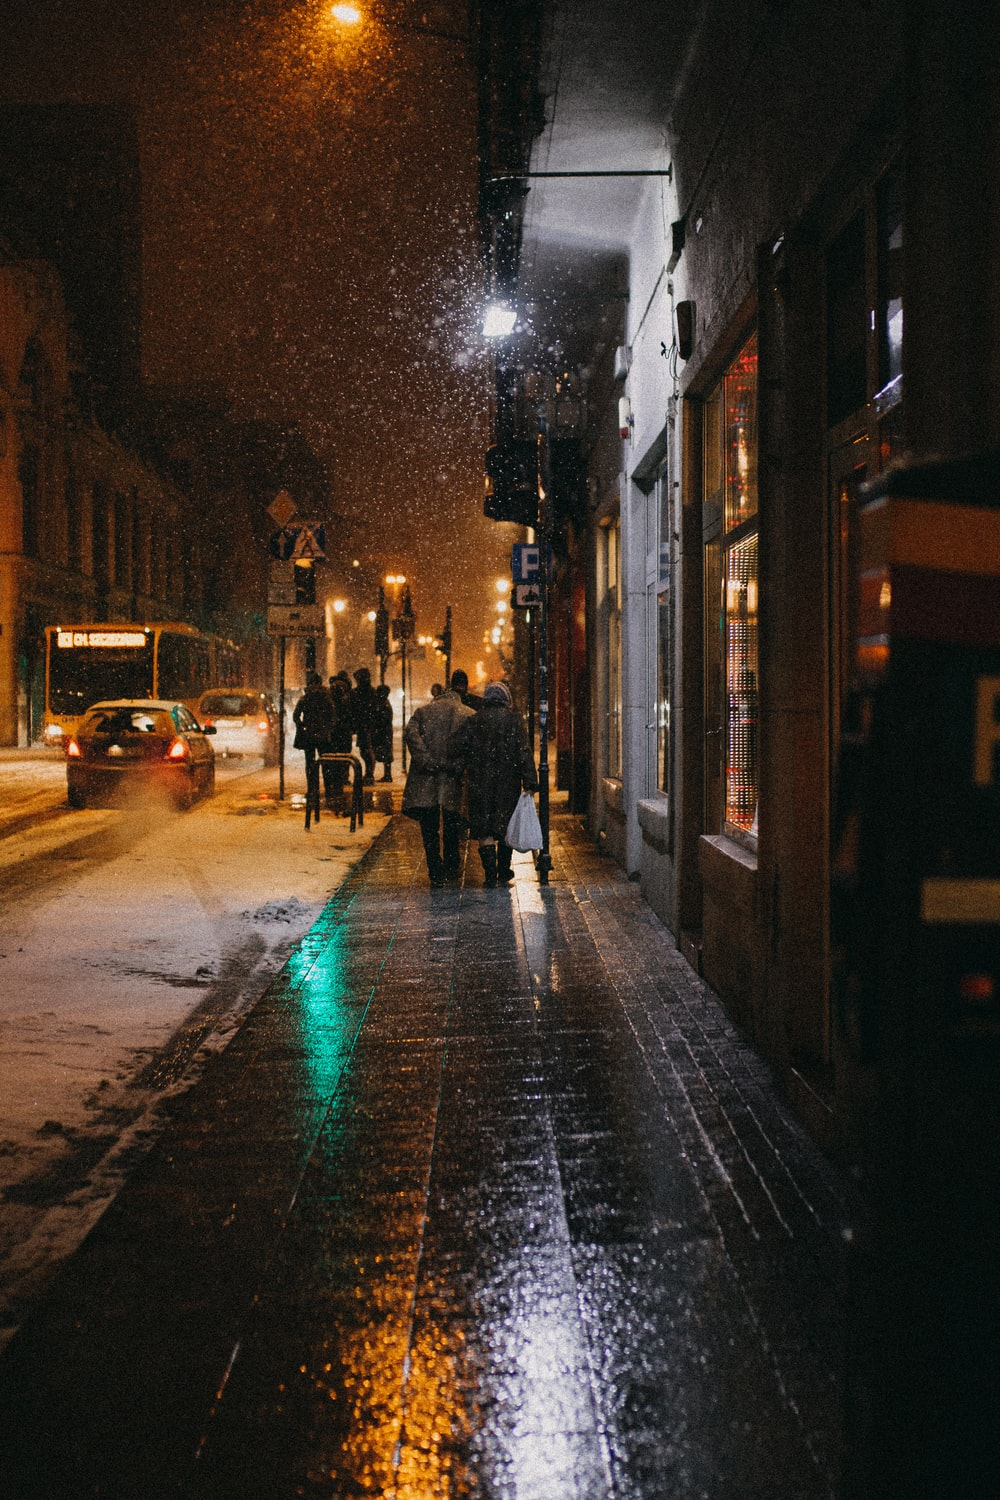 two person walking on sidewalk at night-time